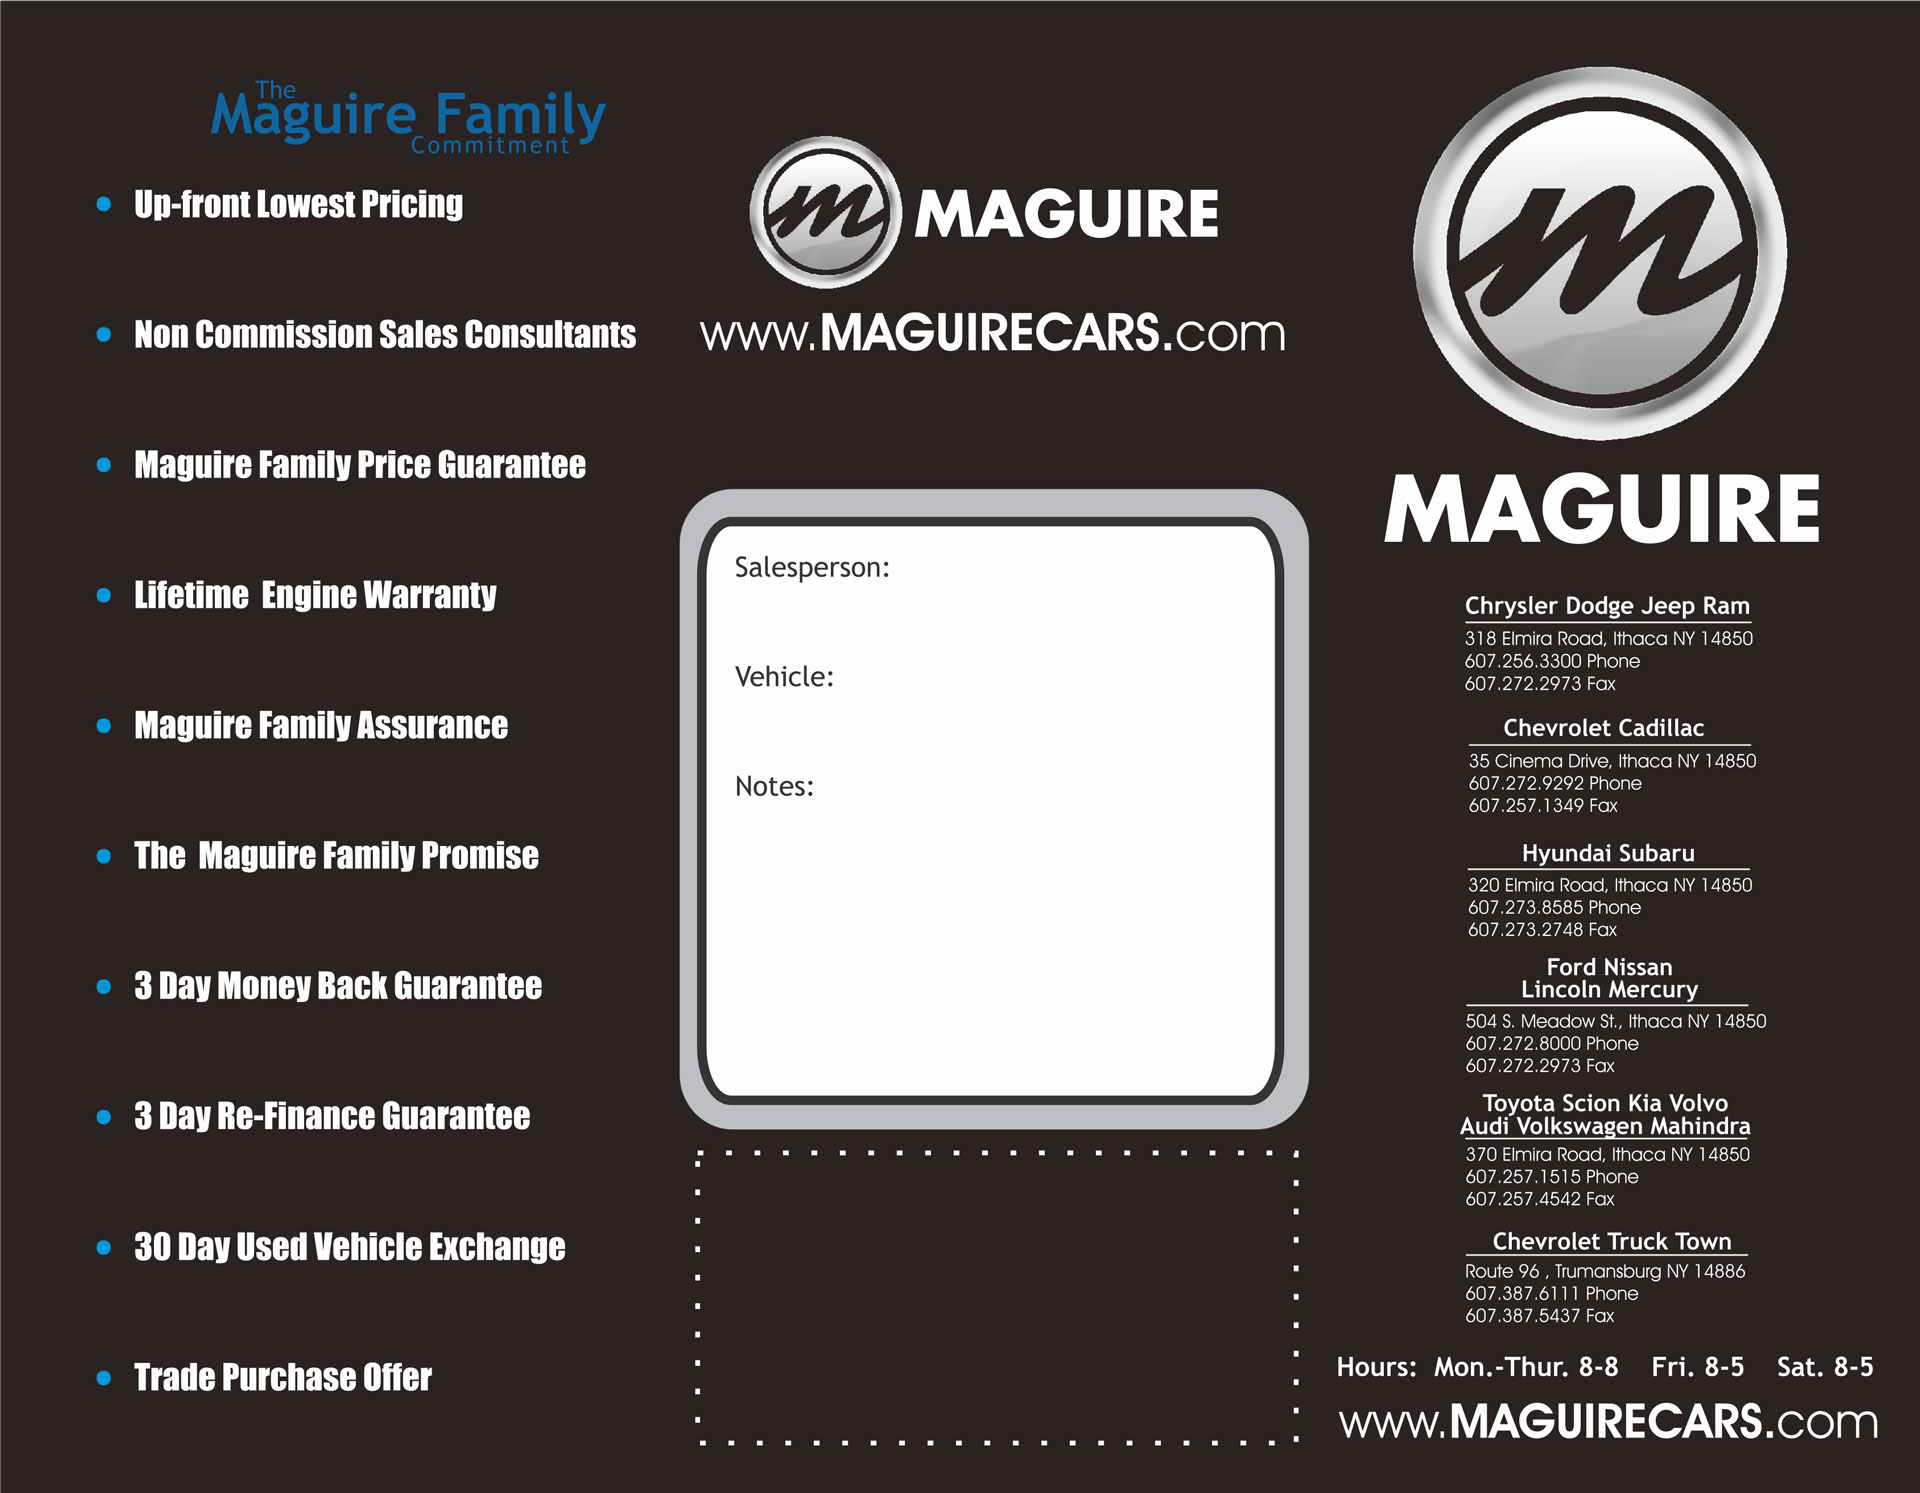 Maguire Walk-away Brochure